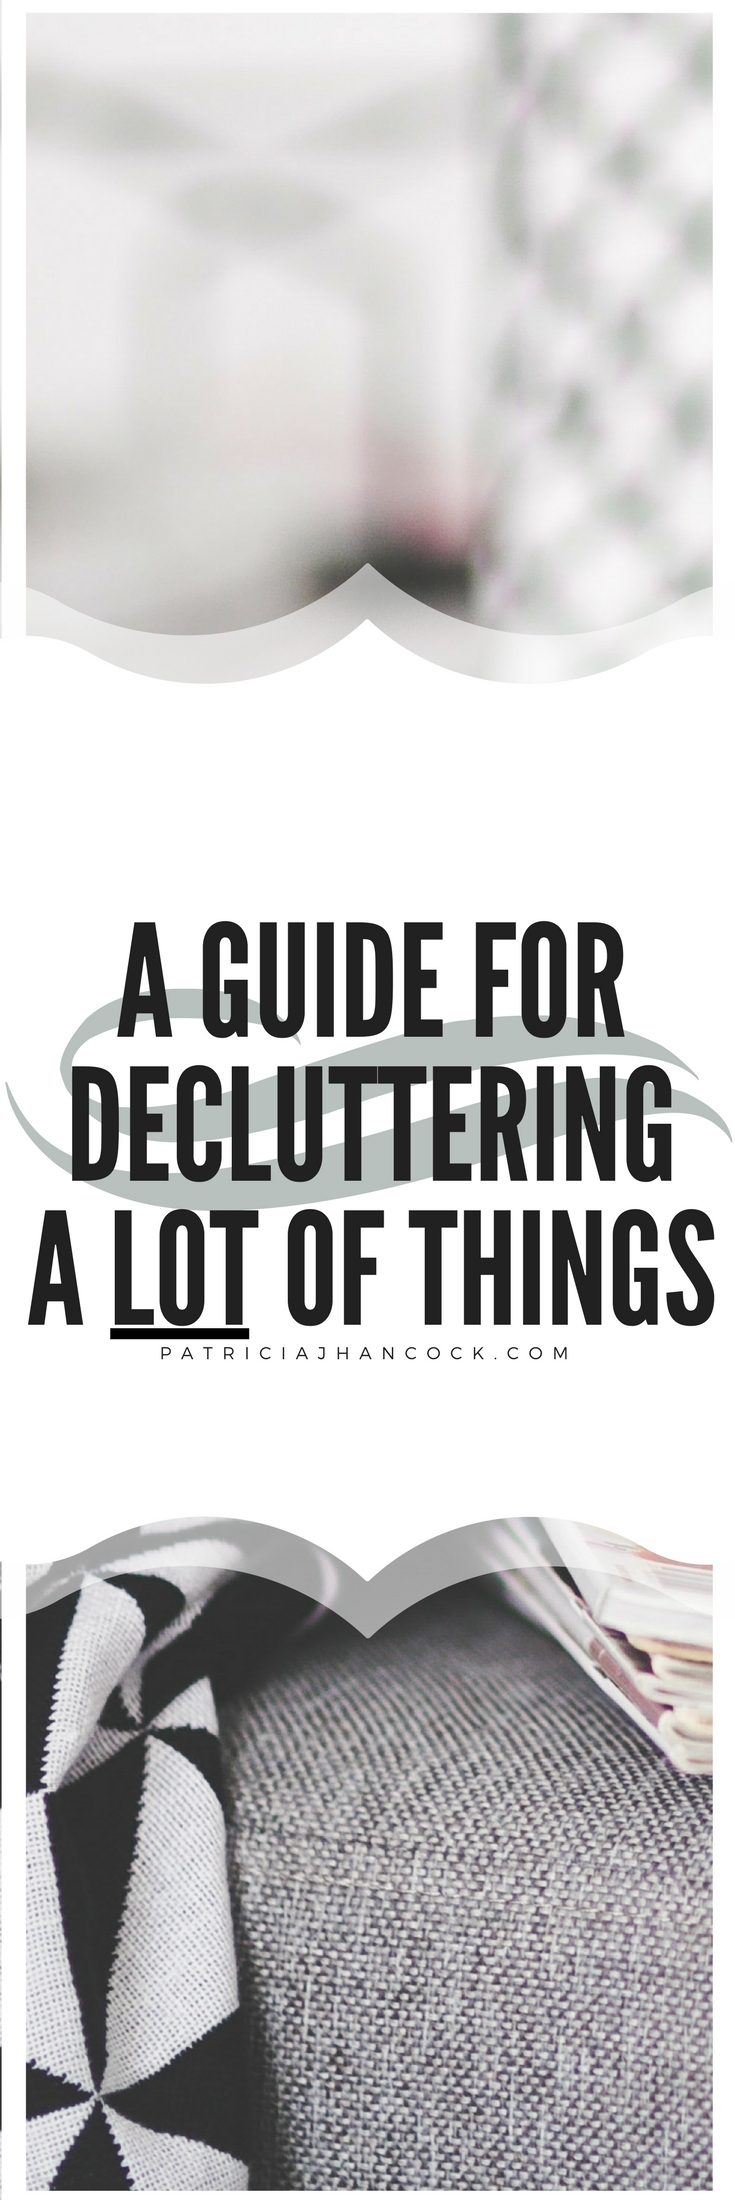 When you're faced with a lot of clutter, tried everything in the book to reclaim your house, and yet you're still staring at piles upon piles, what do you do? In this guide, you'll learn that decluttering isn't enough sometimes and what steps you can take to fix it! Easy, actionable steps to achieve a simple household!